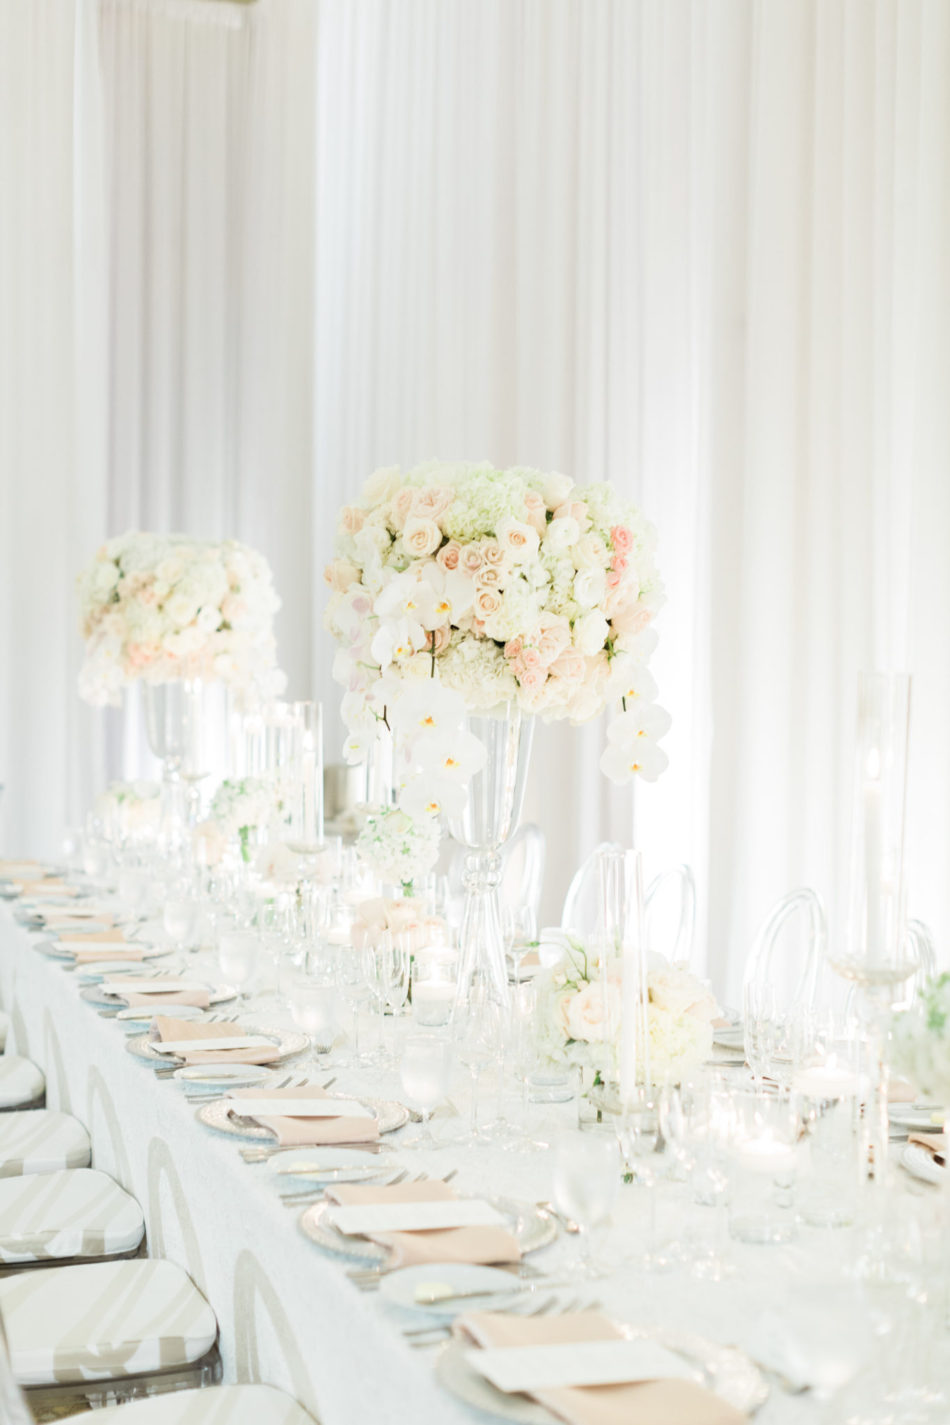 elevated centerpiece, white and blush blooms, romantic all-white wedding, floral design, florist, wedding florist, wedding flowers, orange county weddings, orange county wedding florist, orange county florist, orange county floral design, flowers by cina